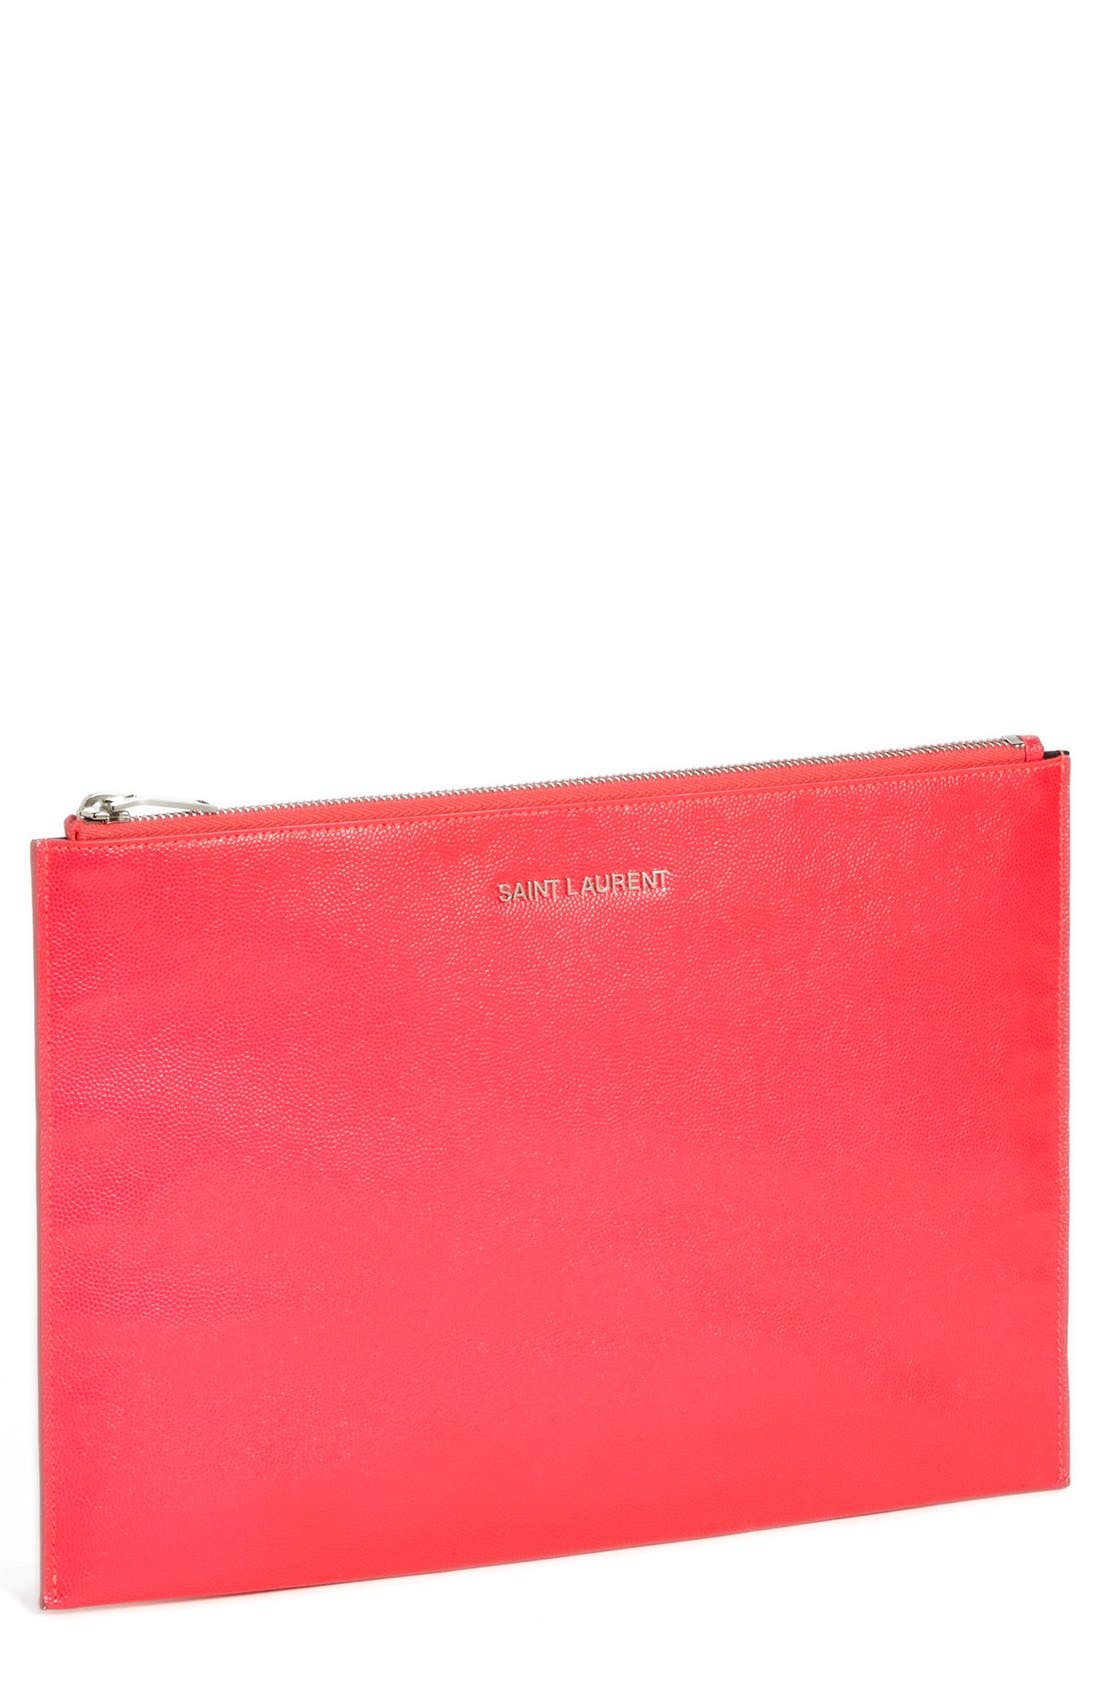 Main Image - Saint Laurent 'Letters' Zip Clutch